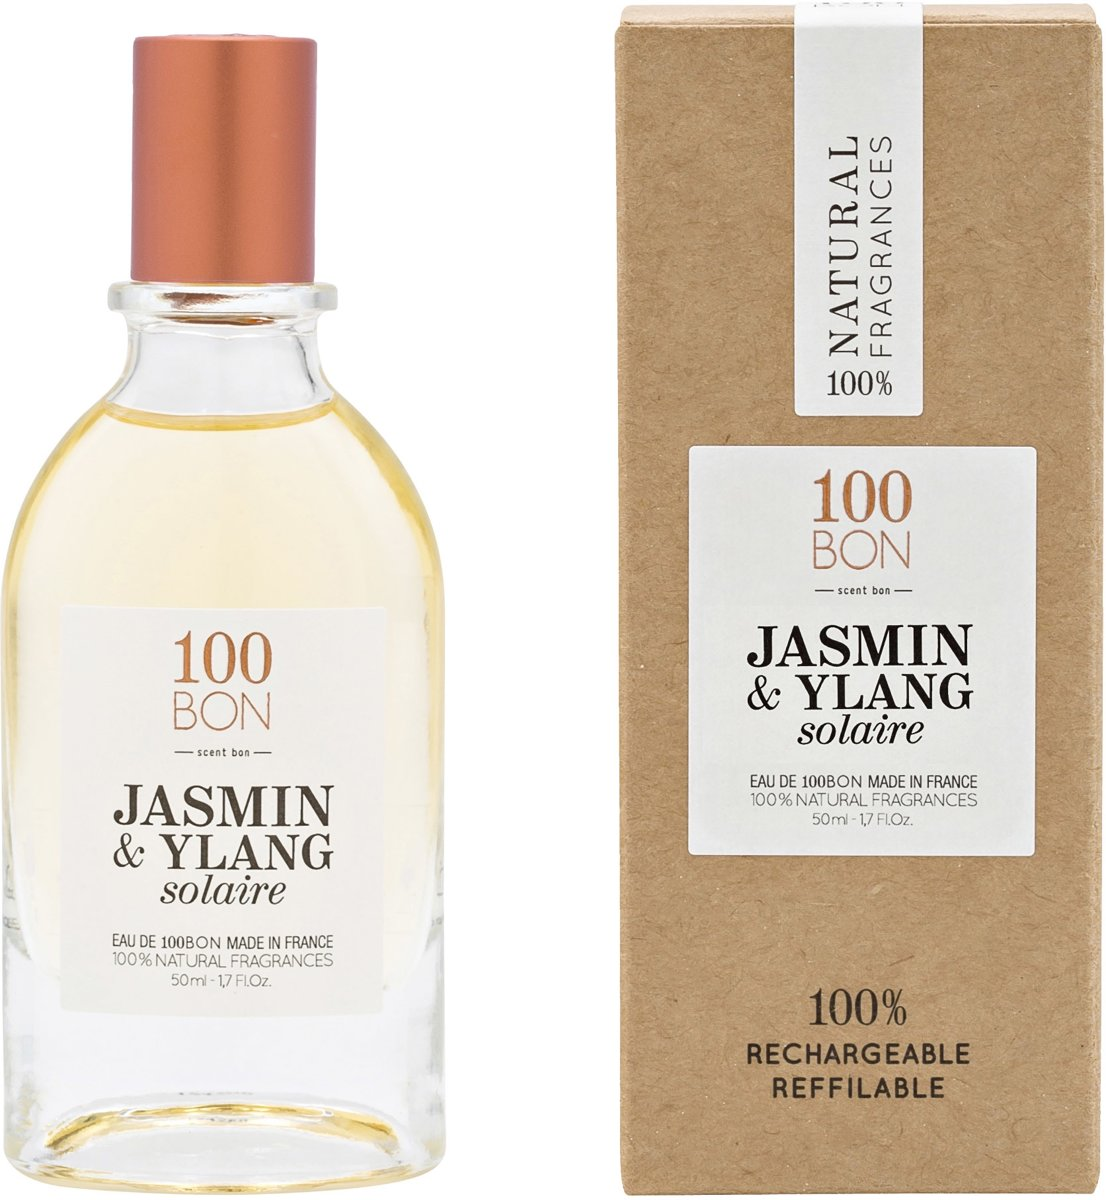 100BON EDT Jasmin & Ylang Solaire - 50ml